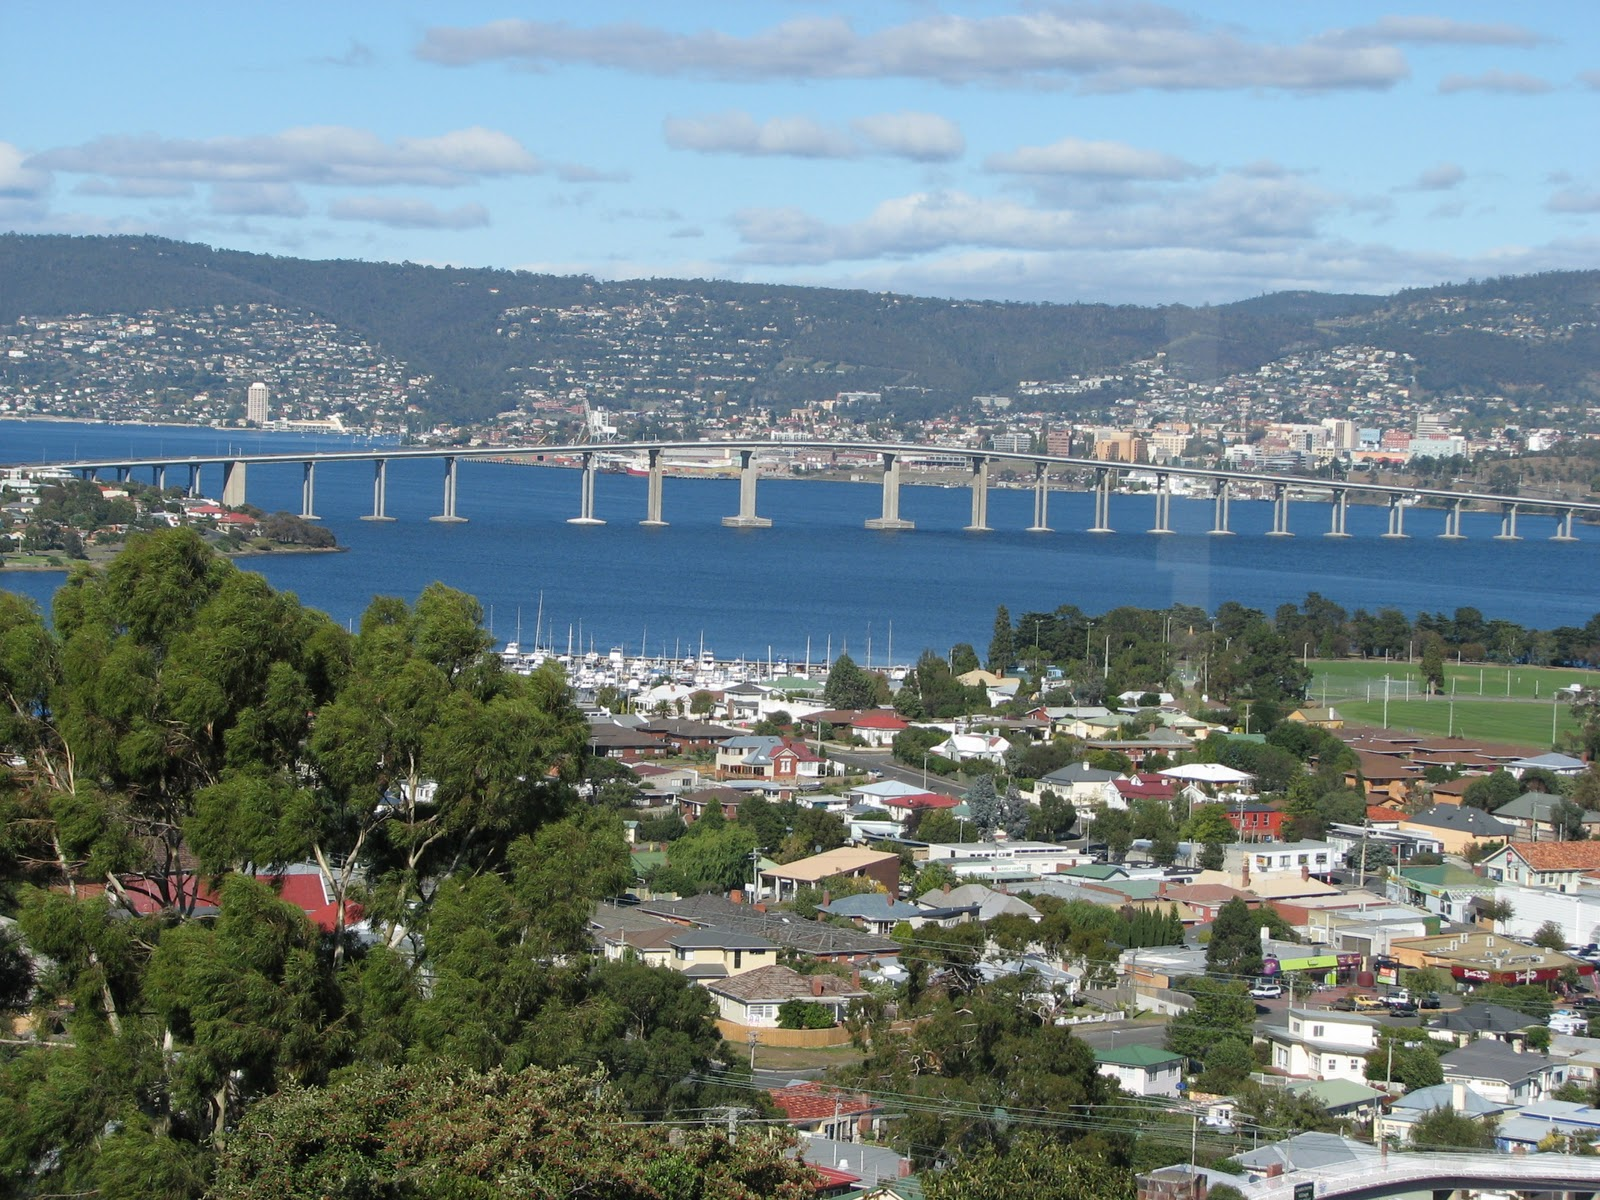 Hobart Australia  City pictures : Hobart Australia | World Wide Images